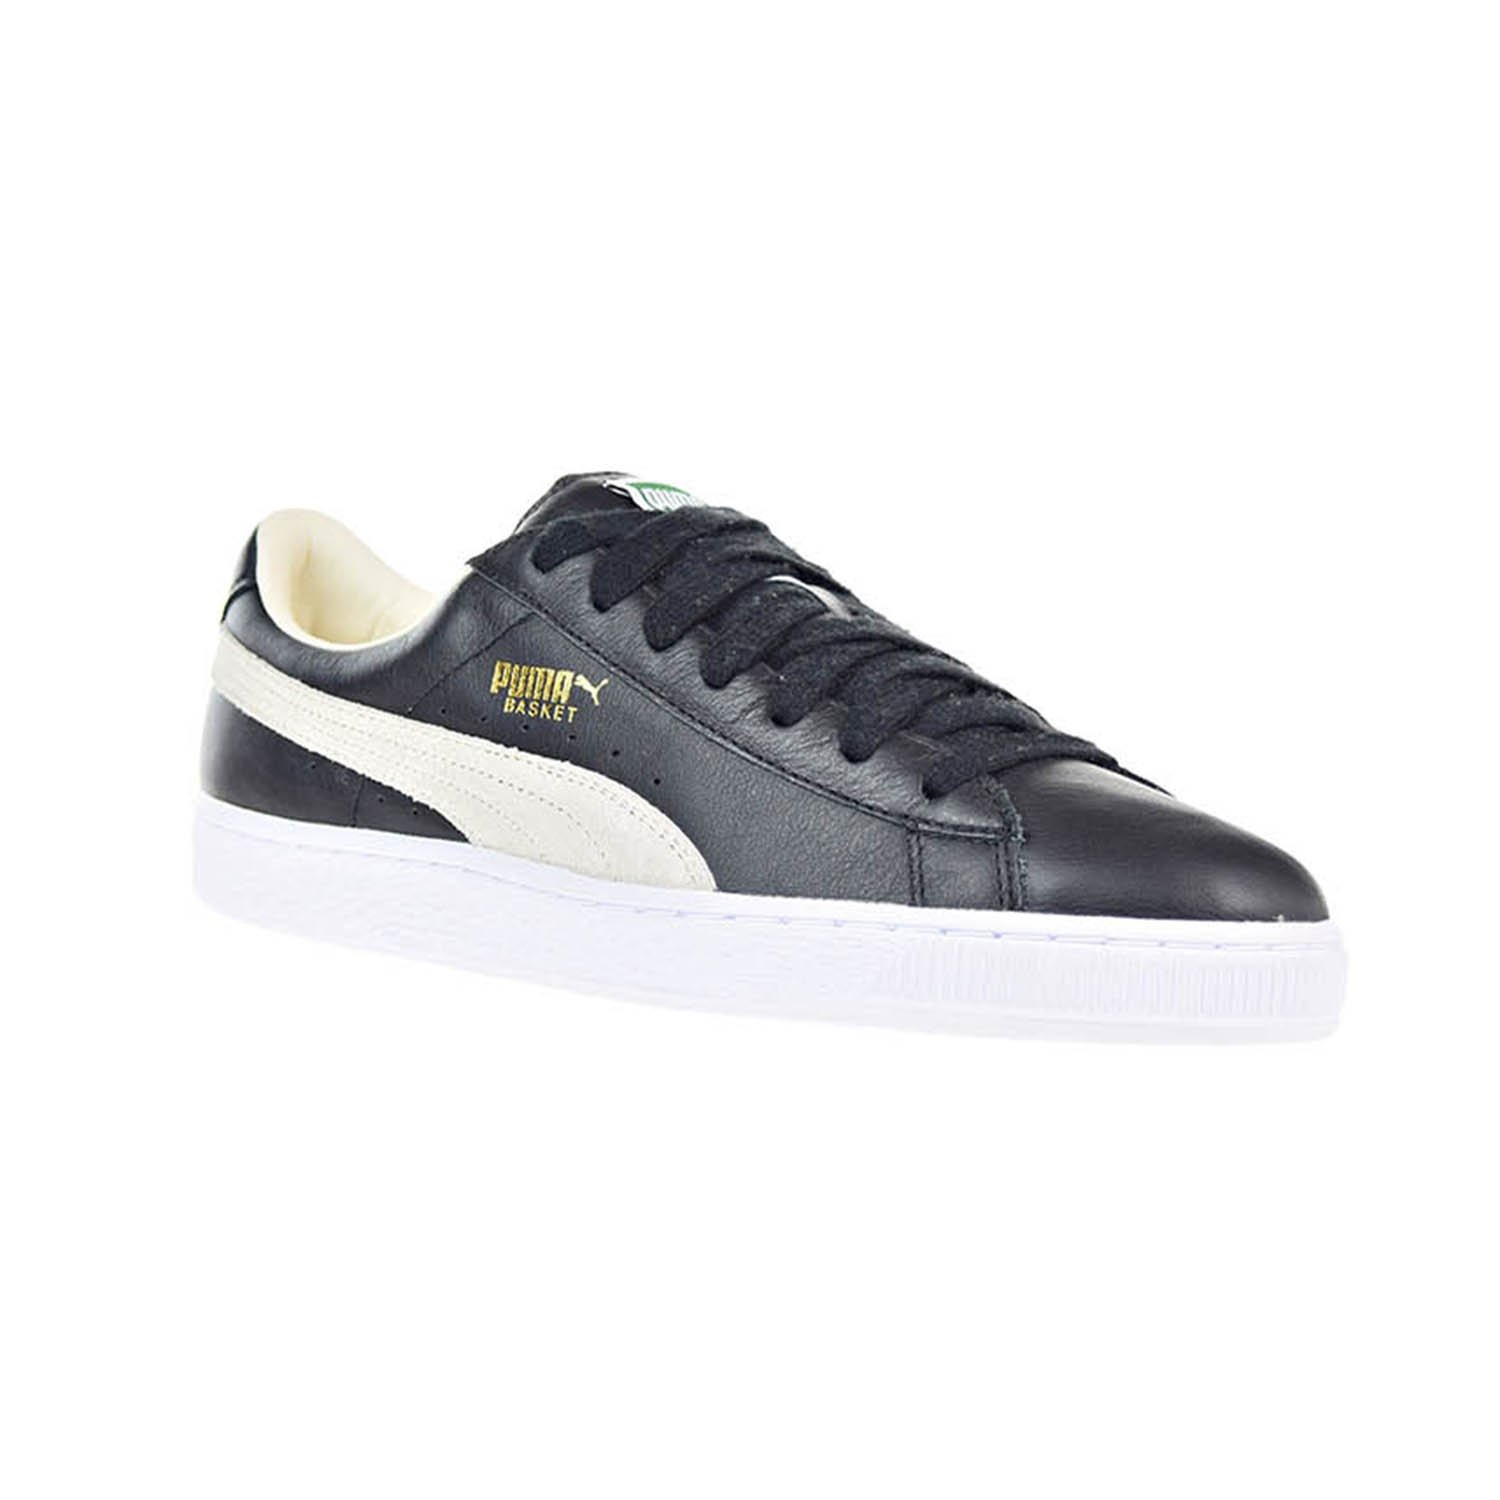 Puma Basket Classic Men s Shoes Black White 351912-02 (11.5 D(M) US)   Amazon.co.uk  Shoes   Bags 97549688d